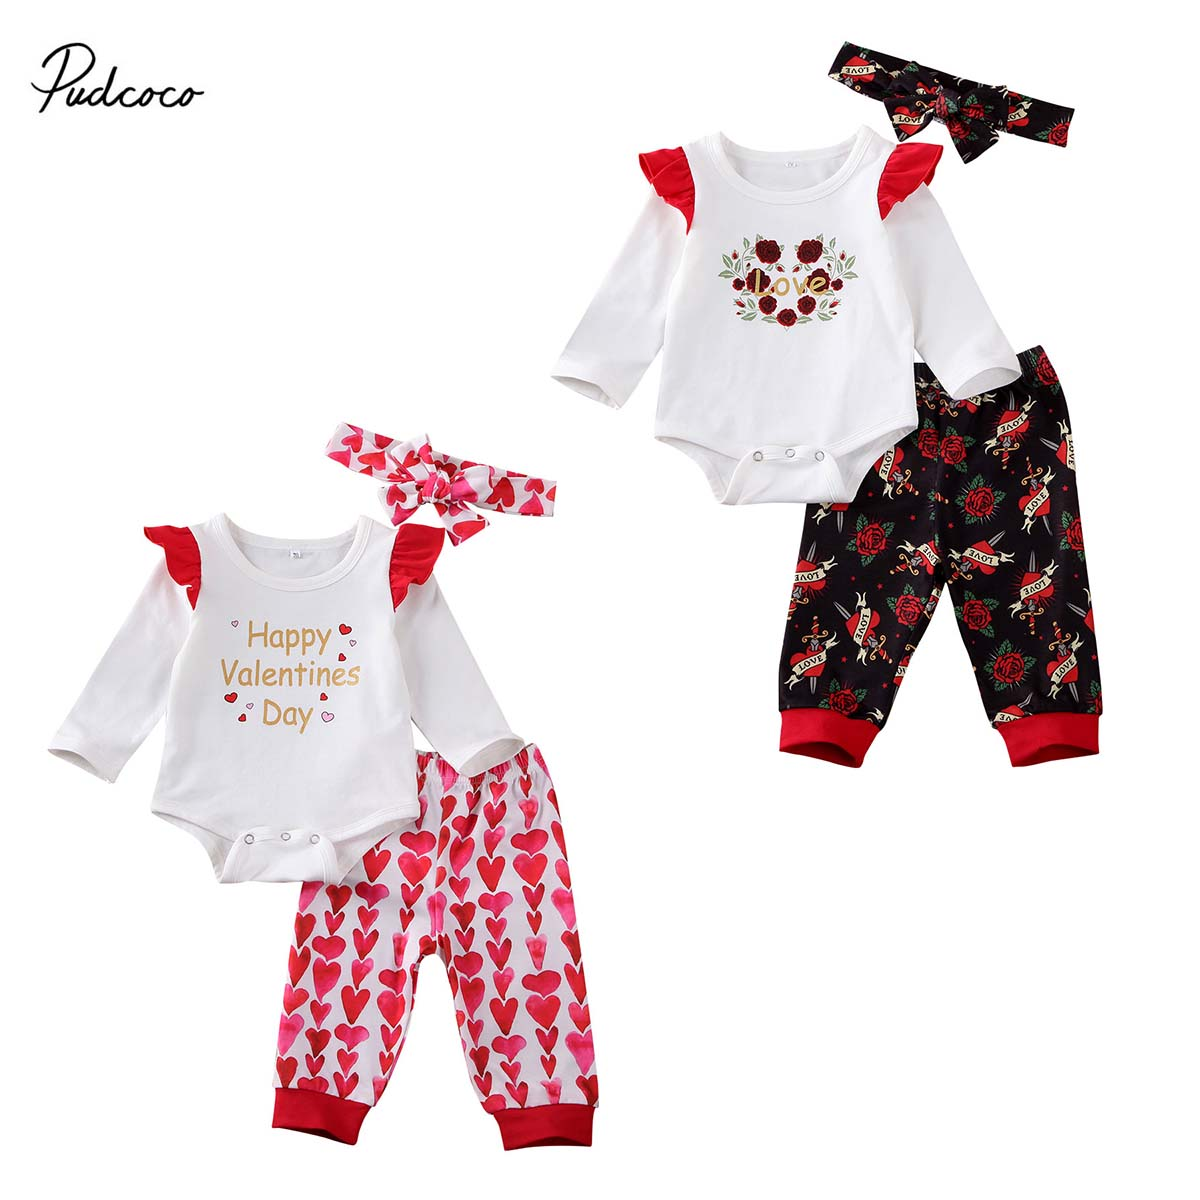 3PCS Newborn Baby Girl Clothes Happy Valentine/'s Day Romper Pants Outfit Clothes